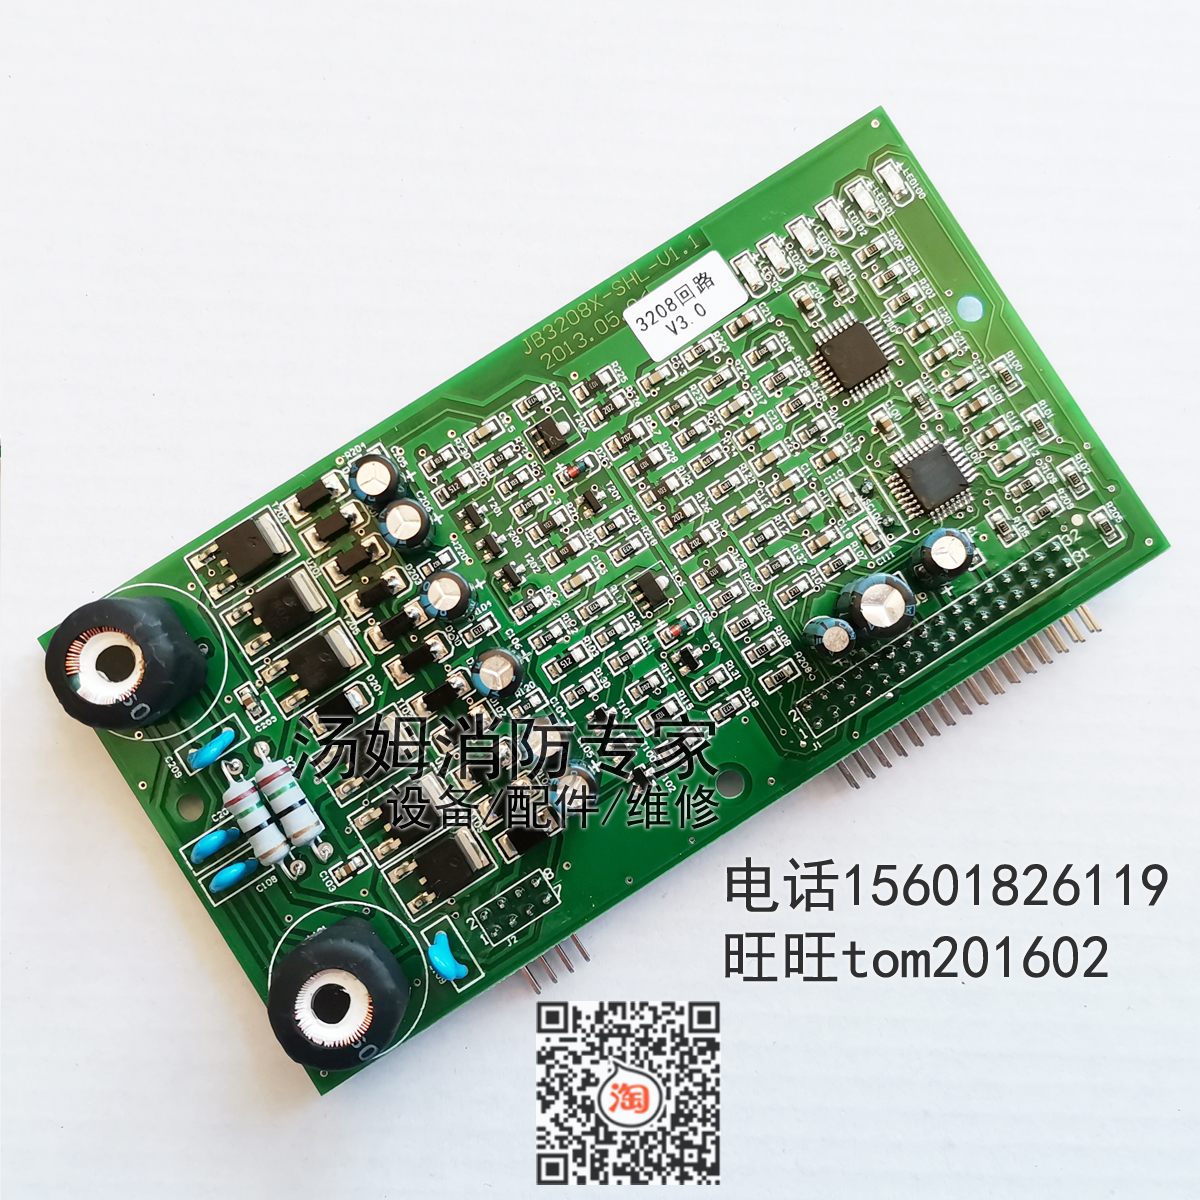 New original Shanghai Songjiang 3208G T 3208B double circuit board secondary circuit board single circuit board